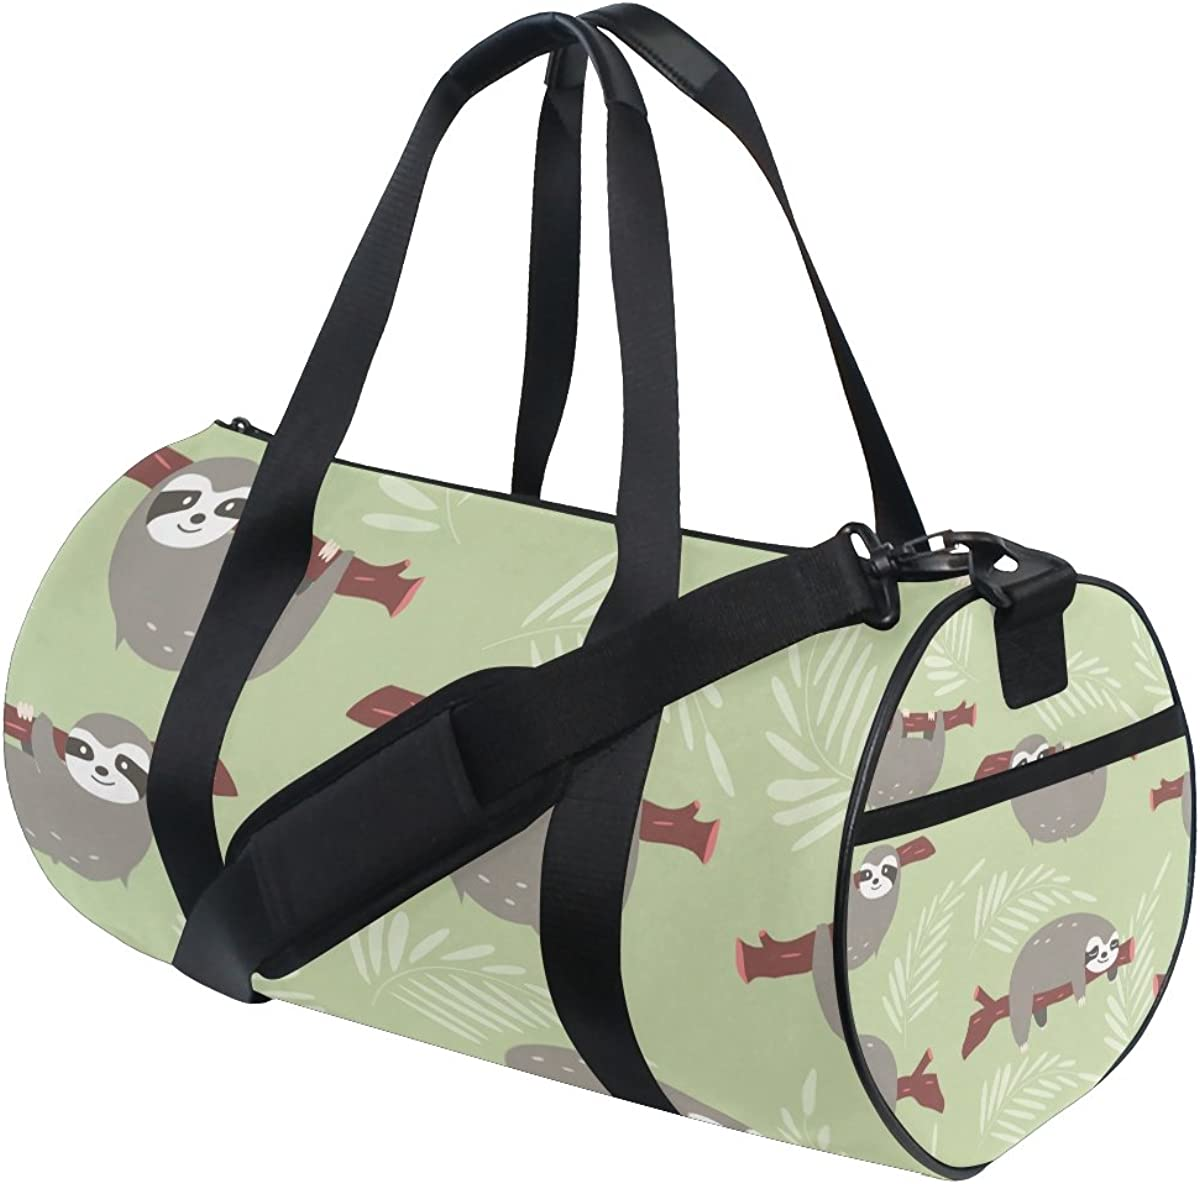 Evolutions Yoga Sloth Travel Duffel Bag Sports Gym Bag For Men